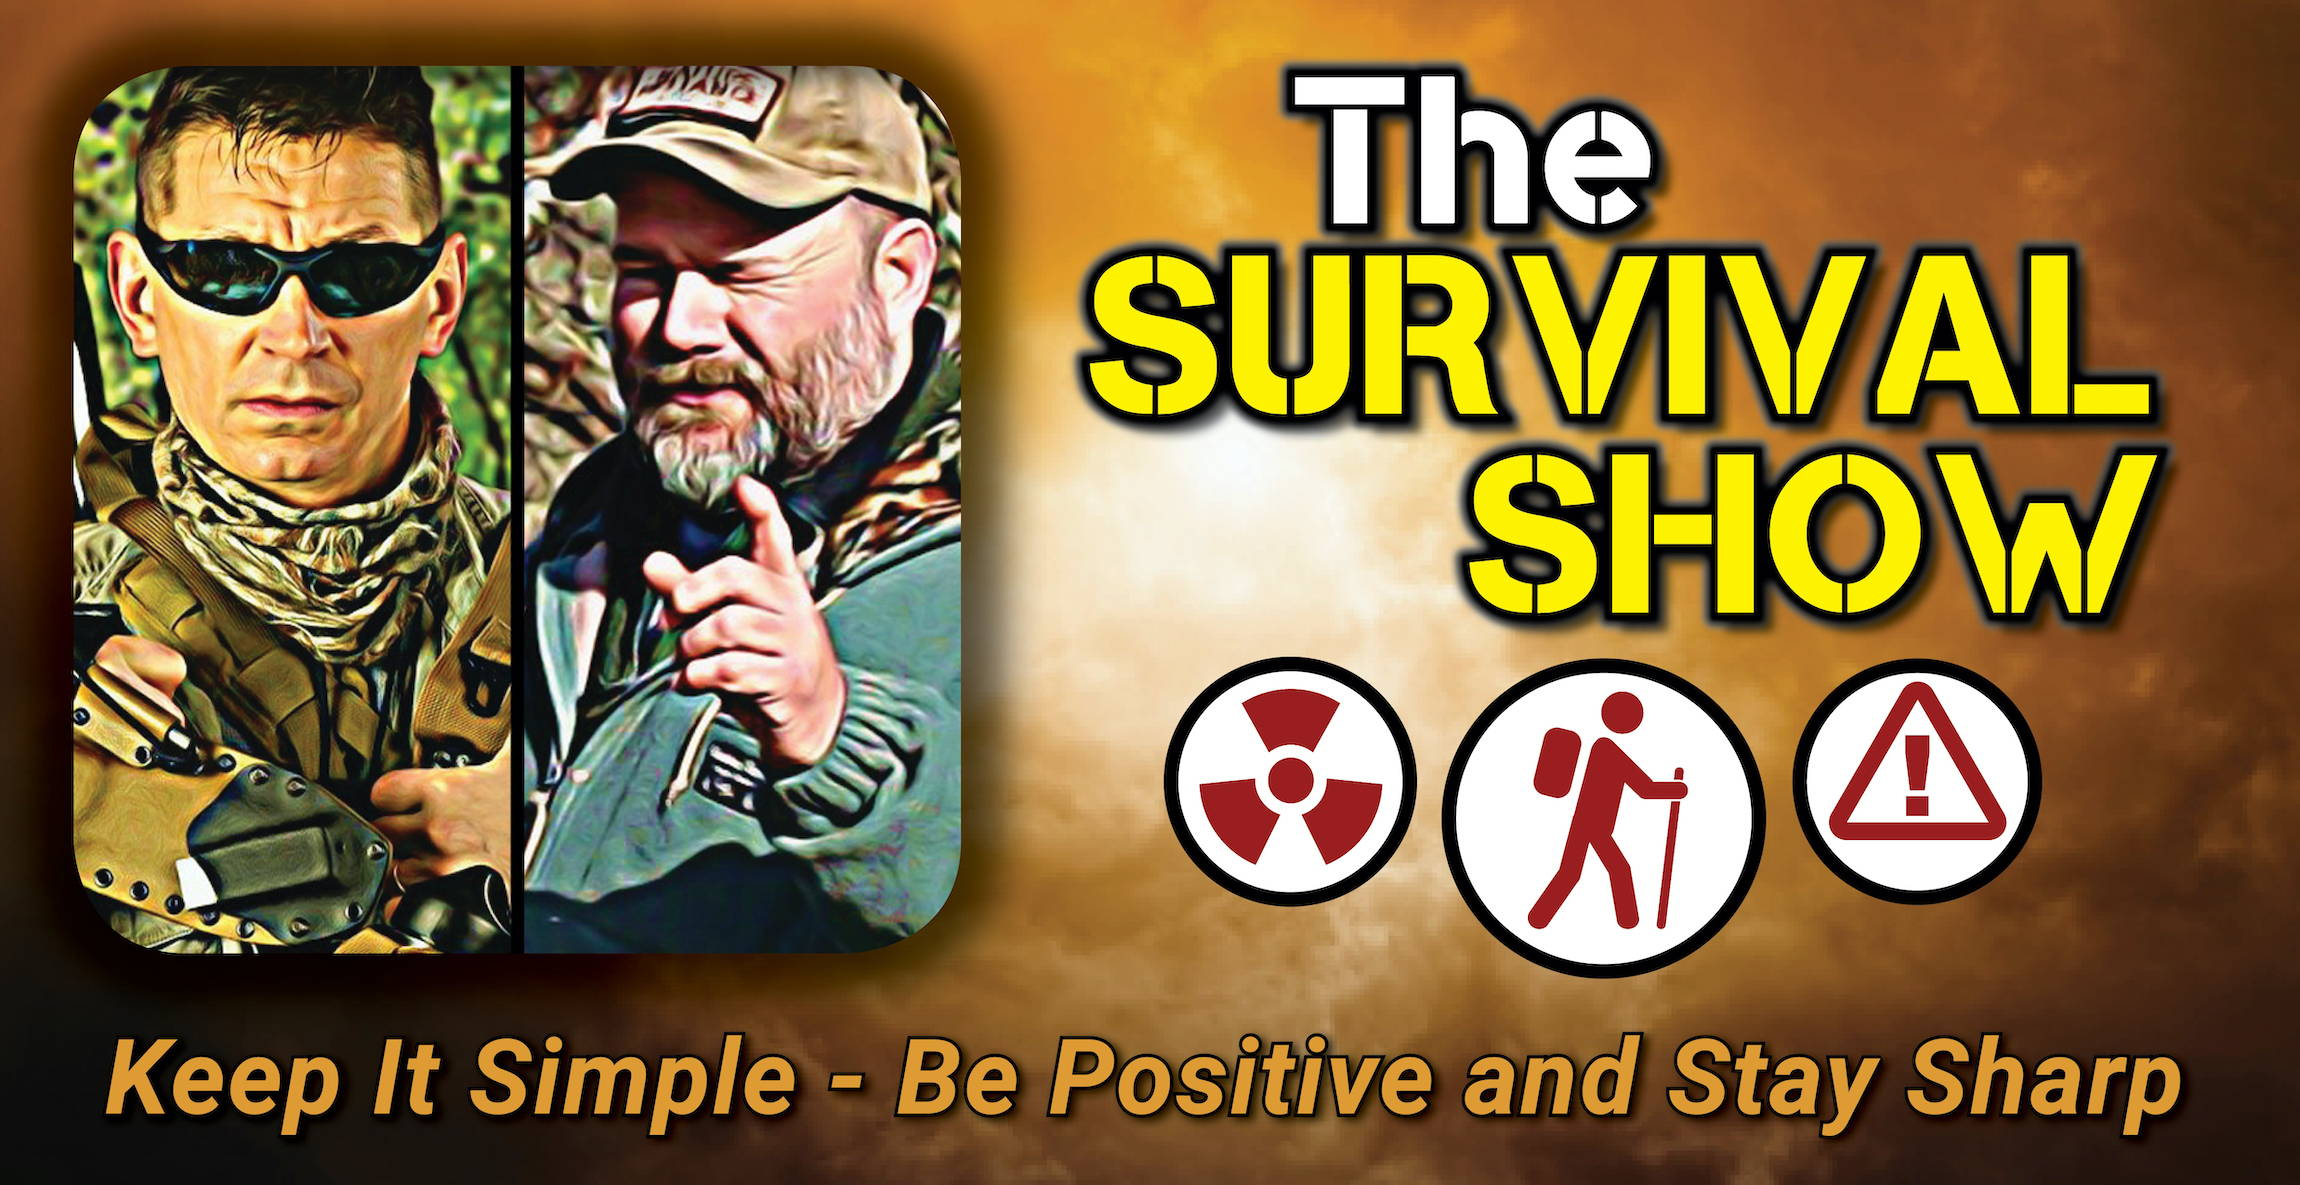 Listen to the Survival Show Podcast